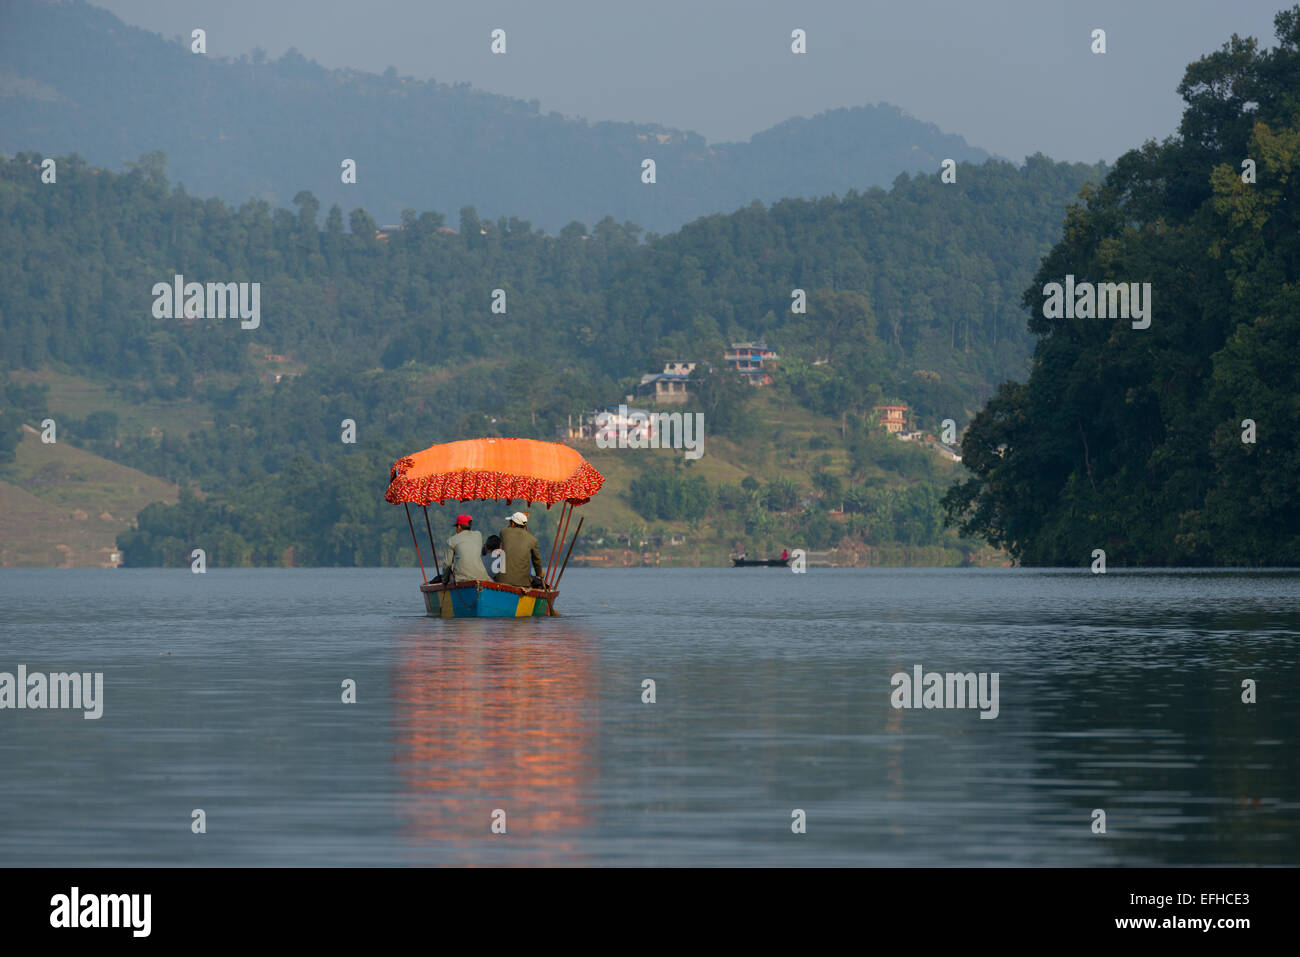 Tourist boat on Begnas Lake, near Pokhara, Nepal - Stock Image